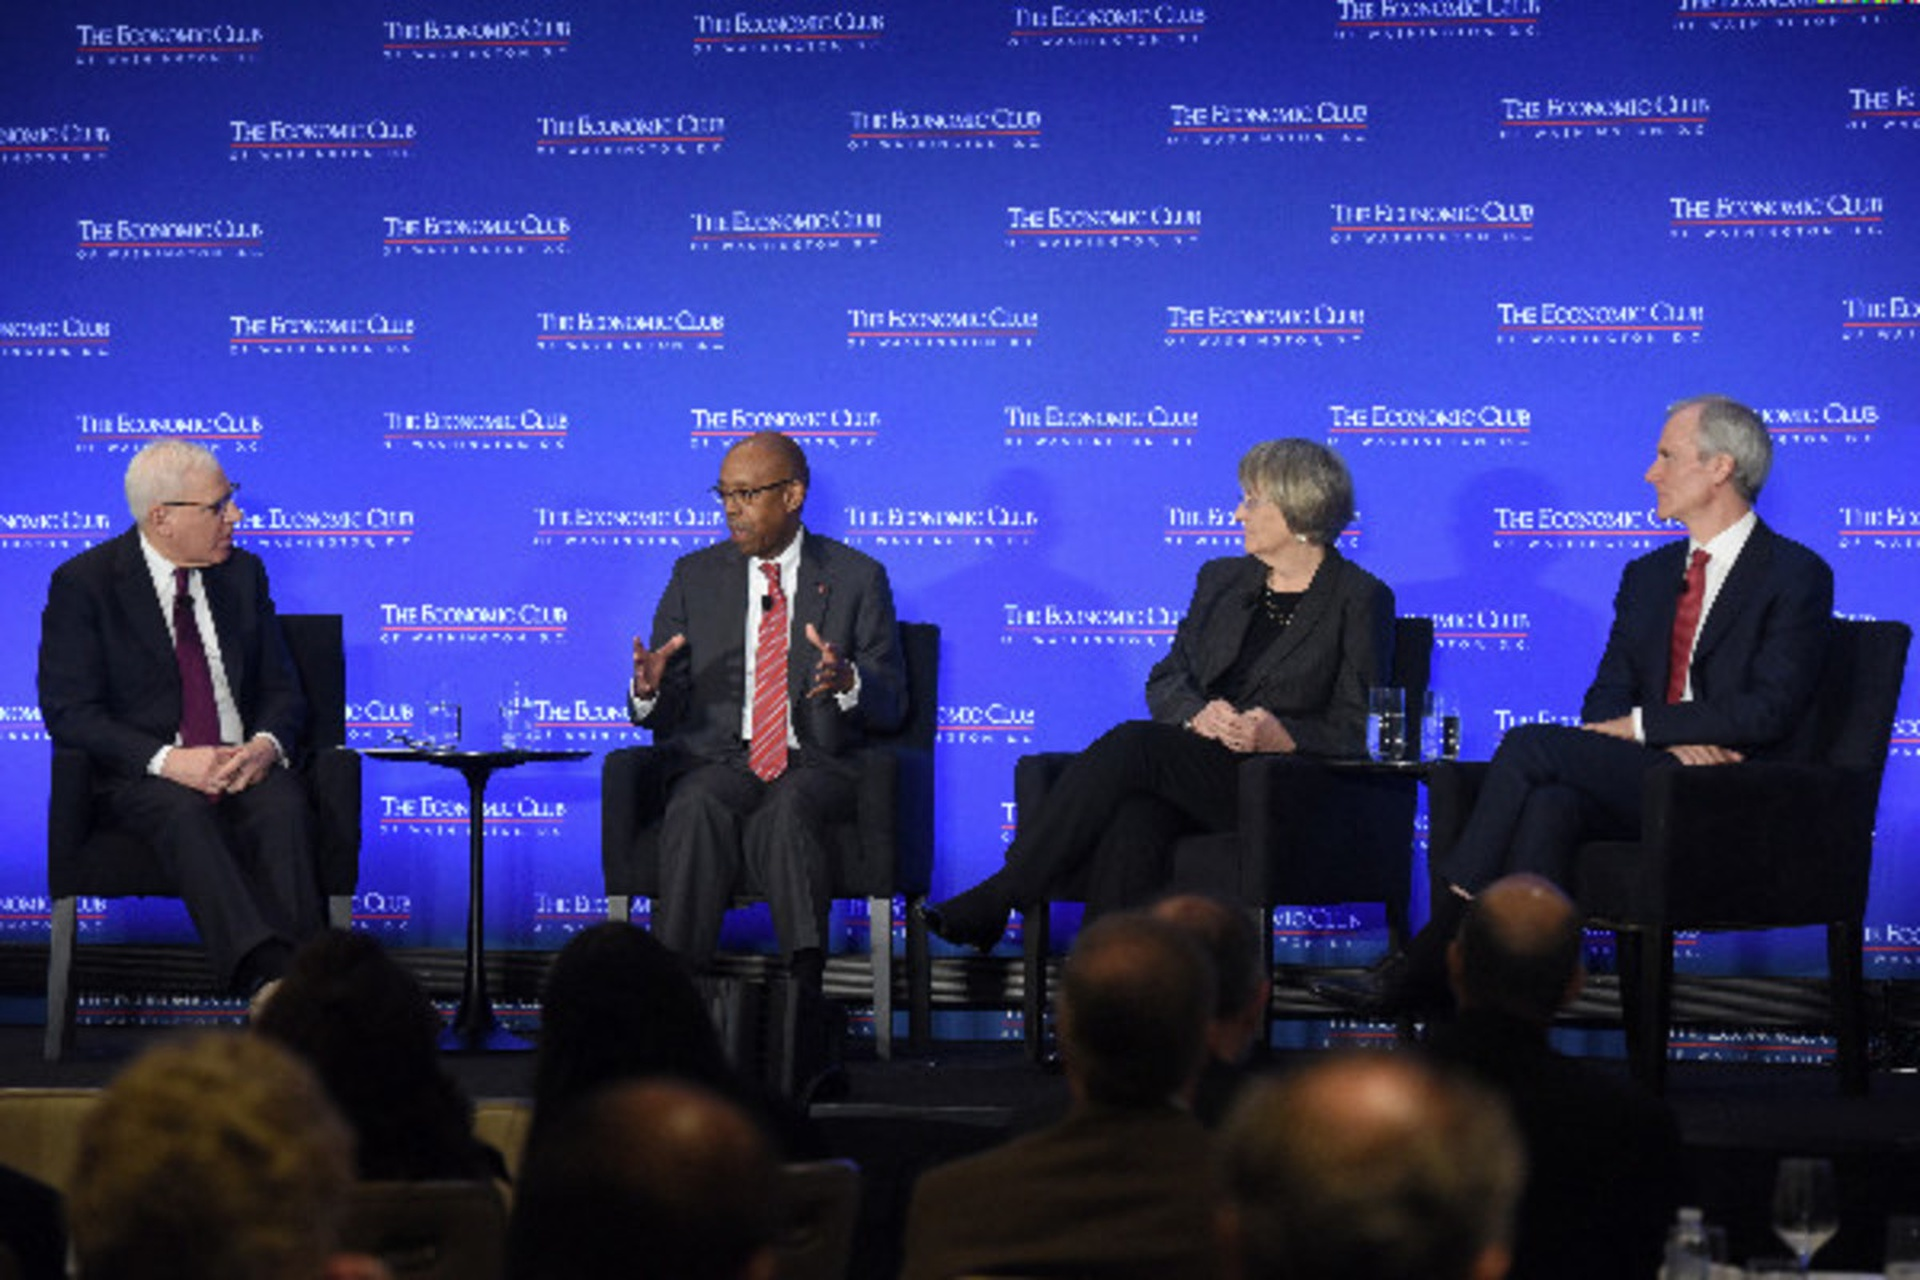 President Drake speaks about higher education. Photo: The Economic Club of Washington, D.C./Joyce N. Boghosian